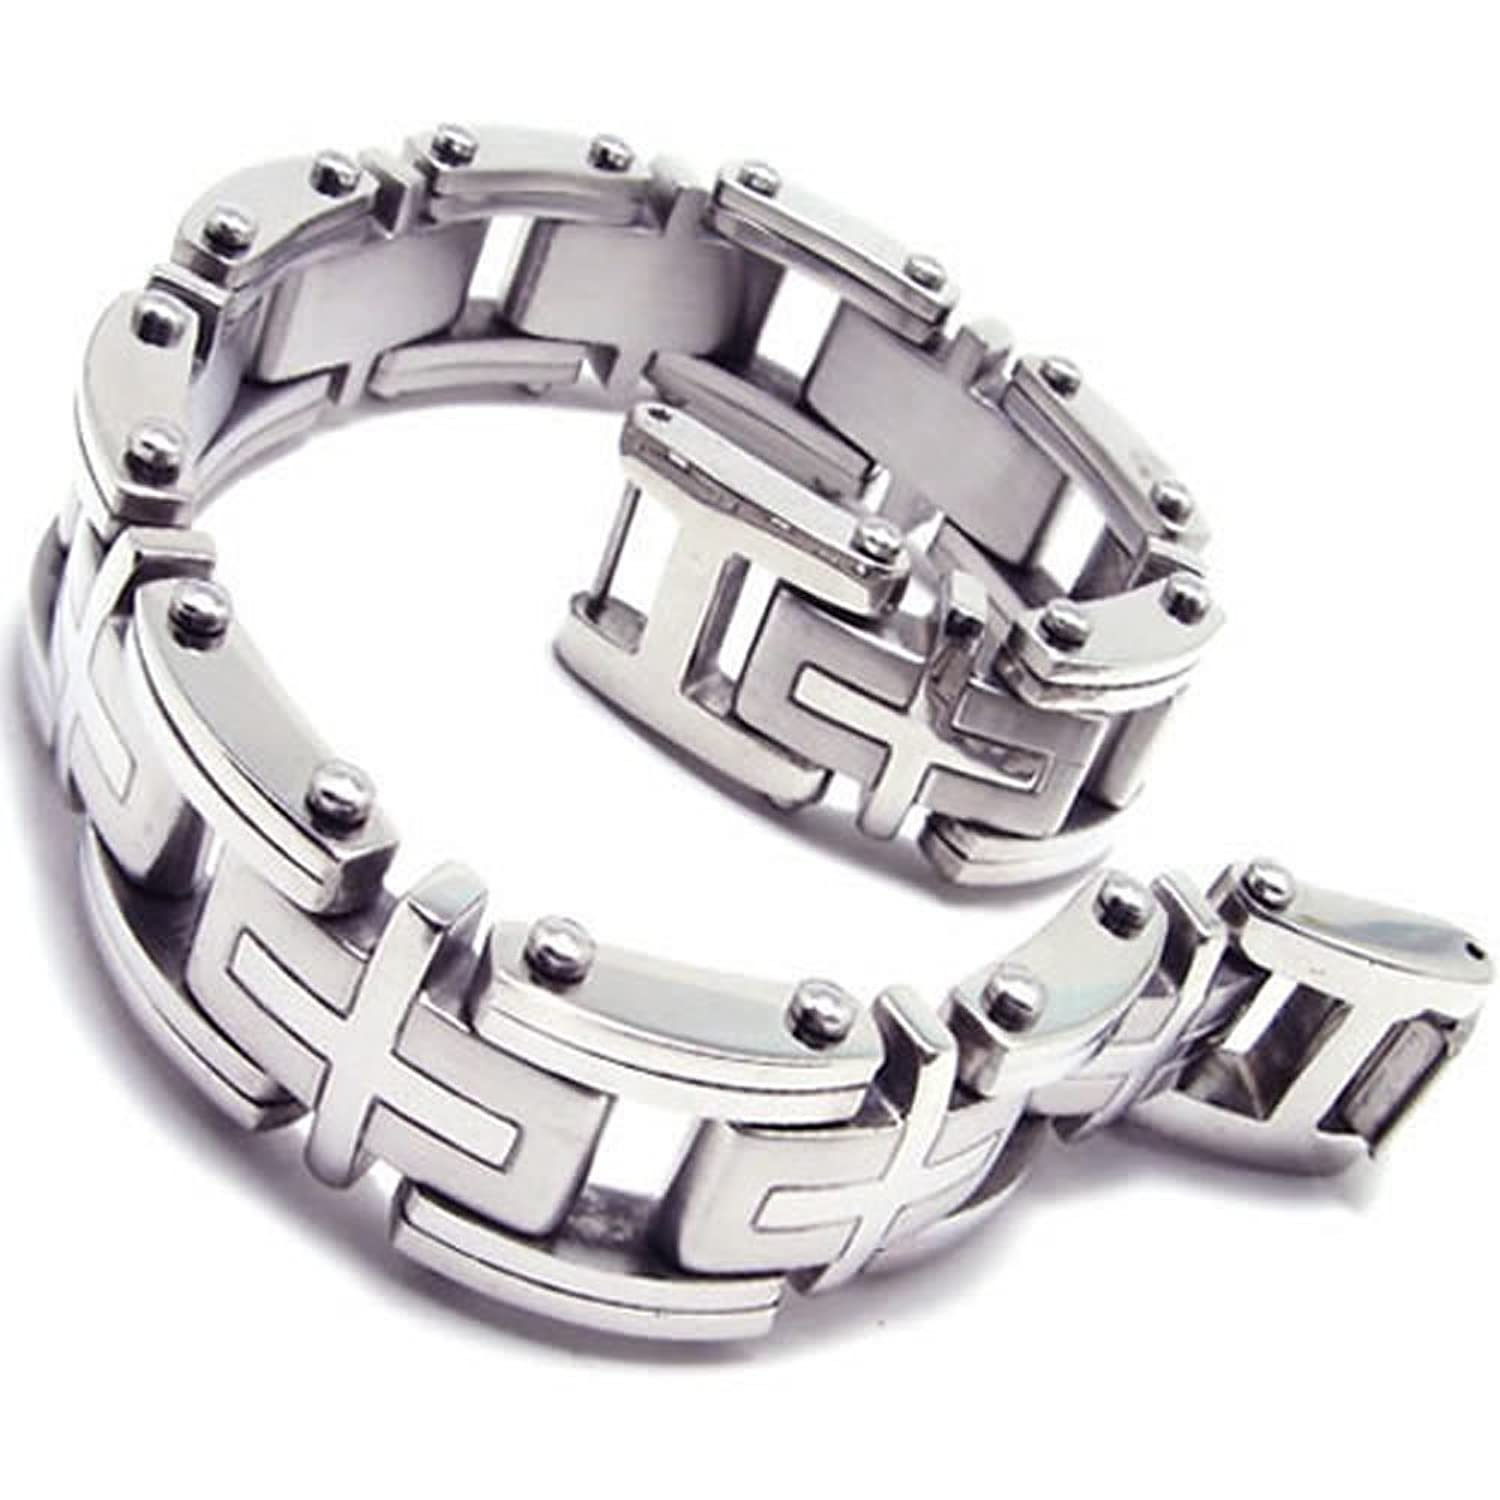 david bracelet silver star of boys jewellery roco